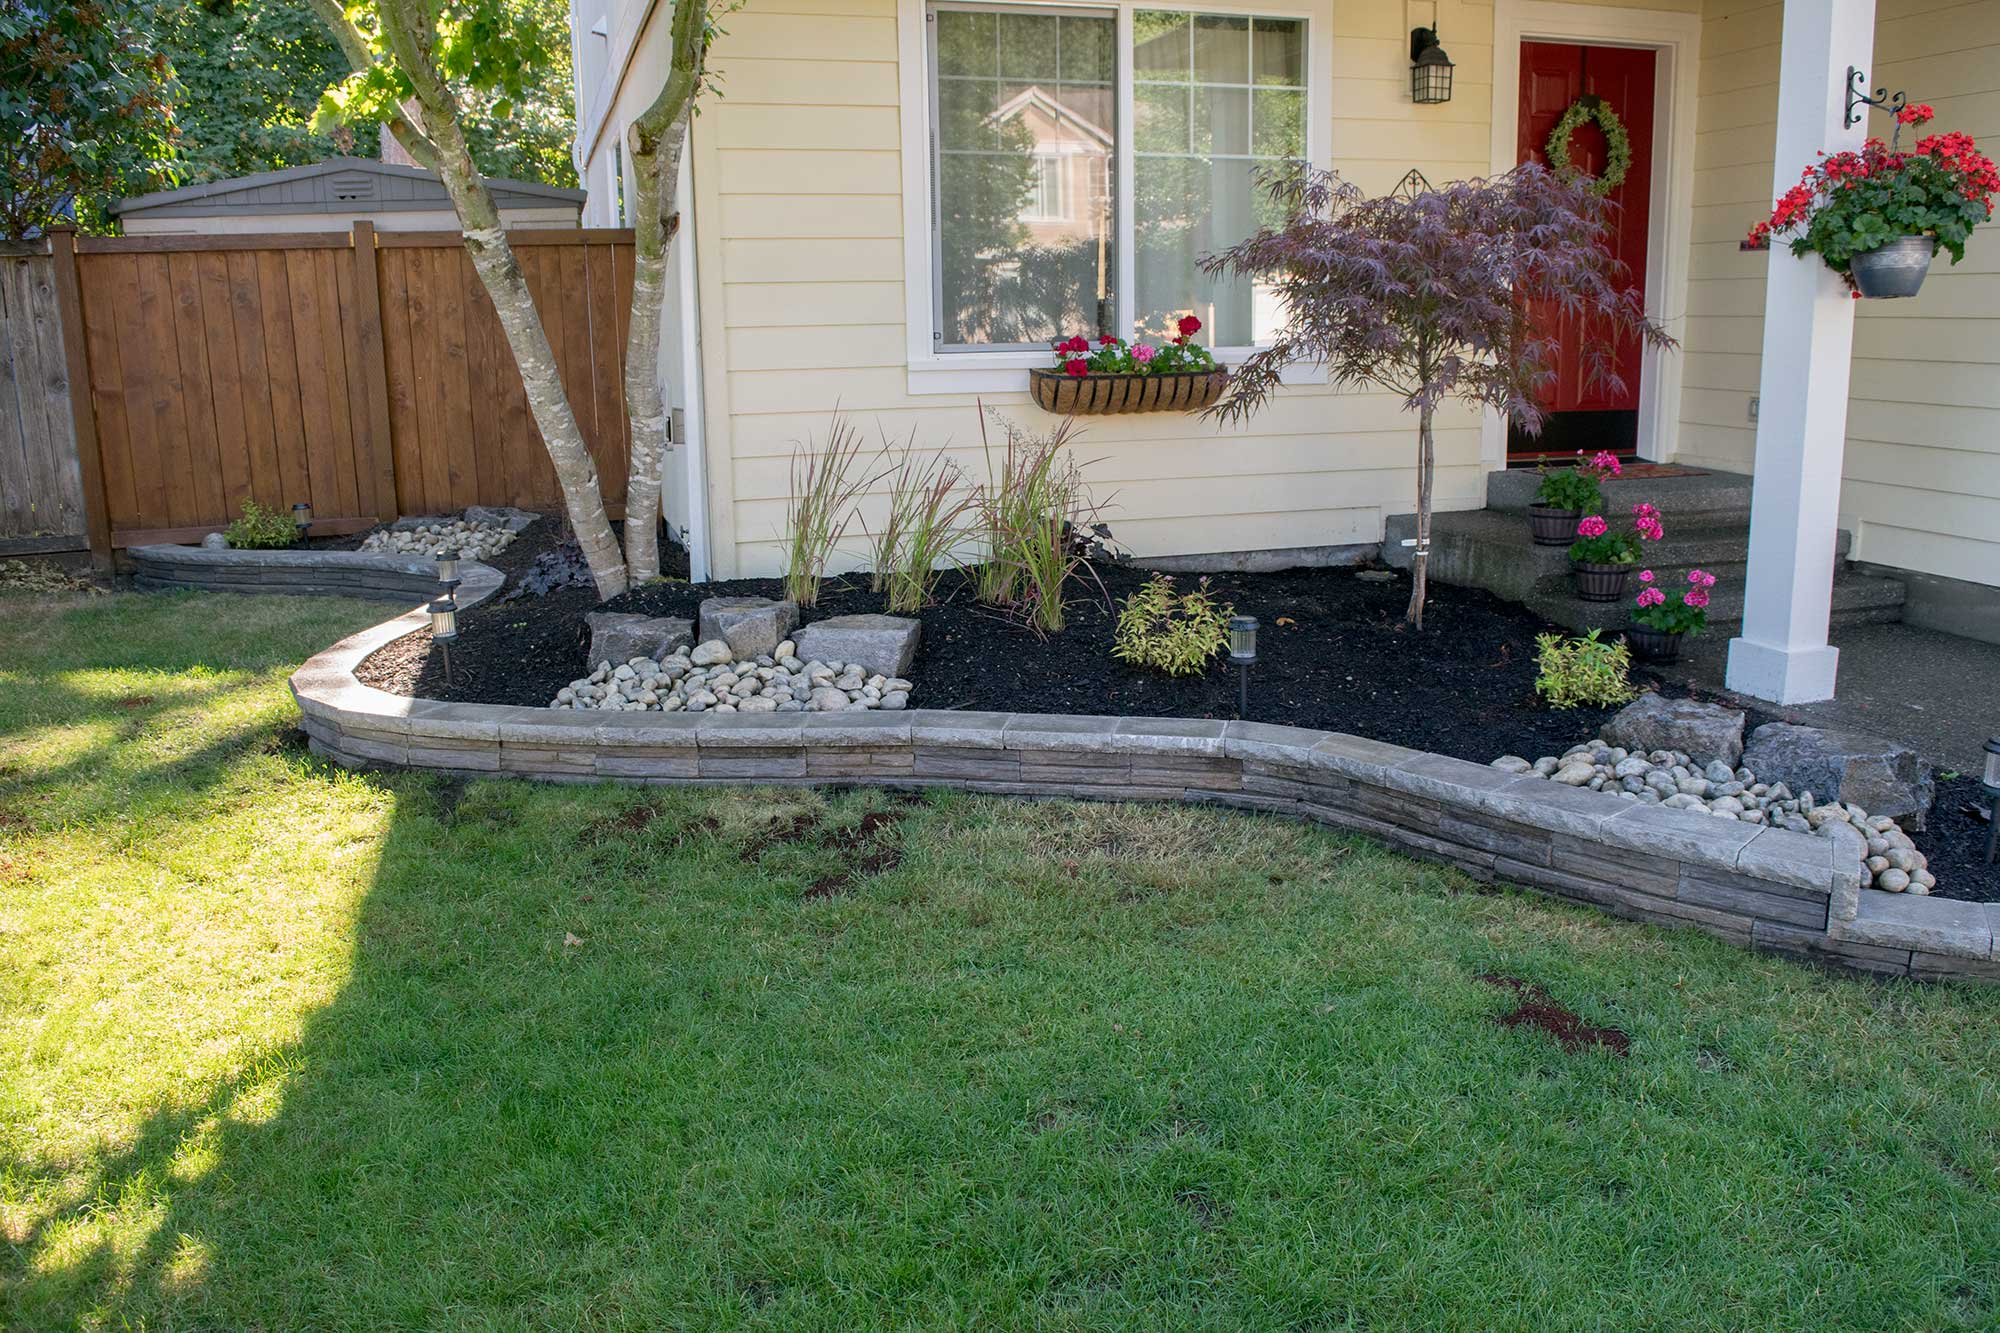 Marvelous Raised Front Yard Landscaping Ideas Part - 4: Front Yard Raised Landscape Bed Front Yard Raised Landscape Bed ...